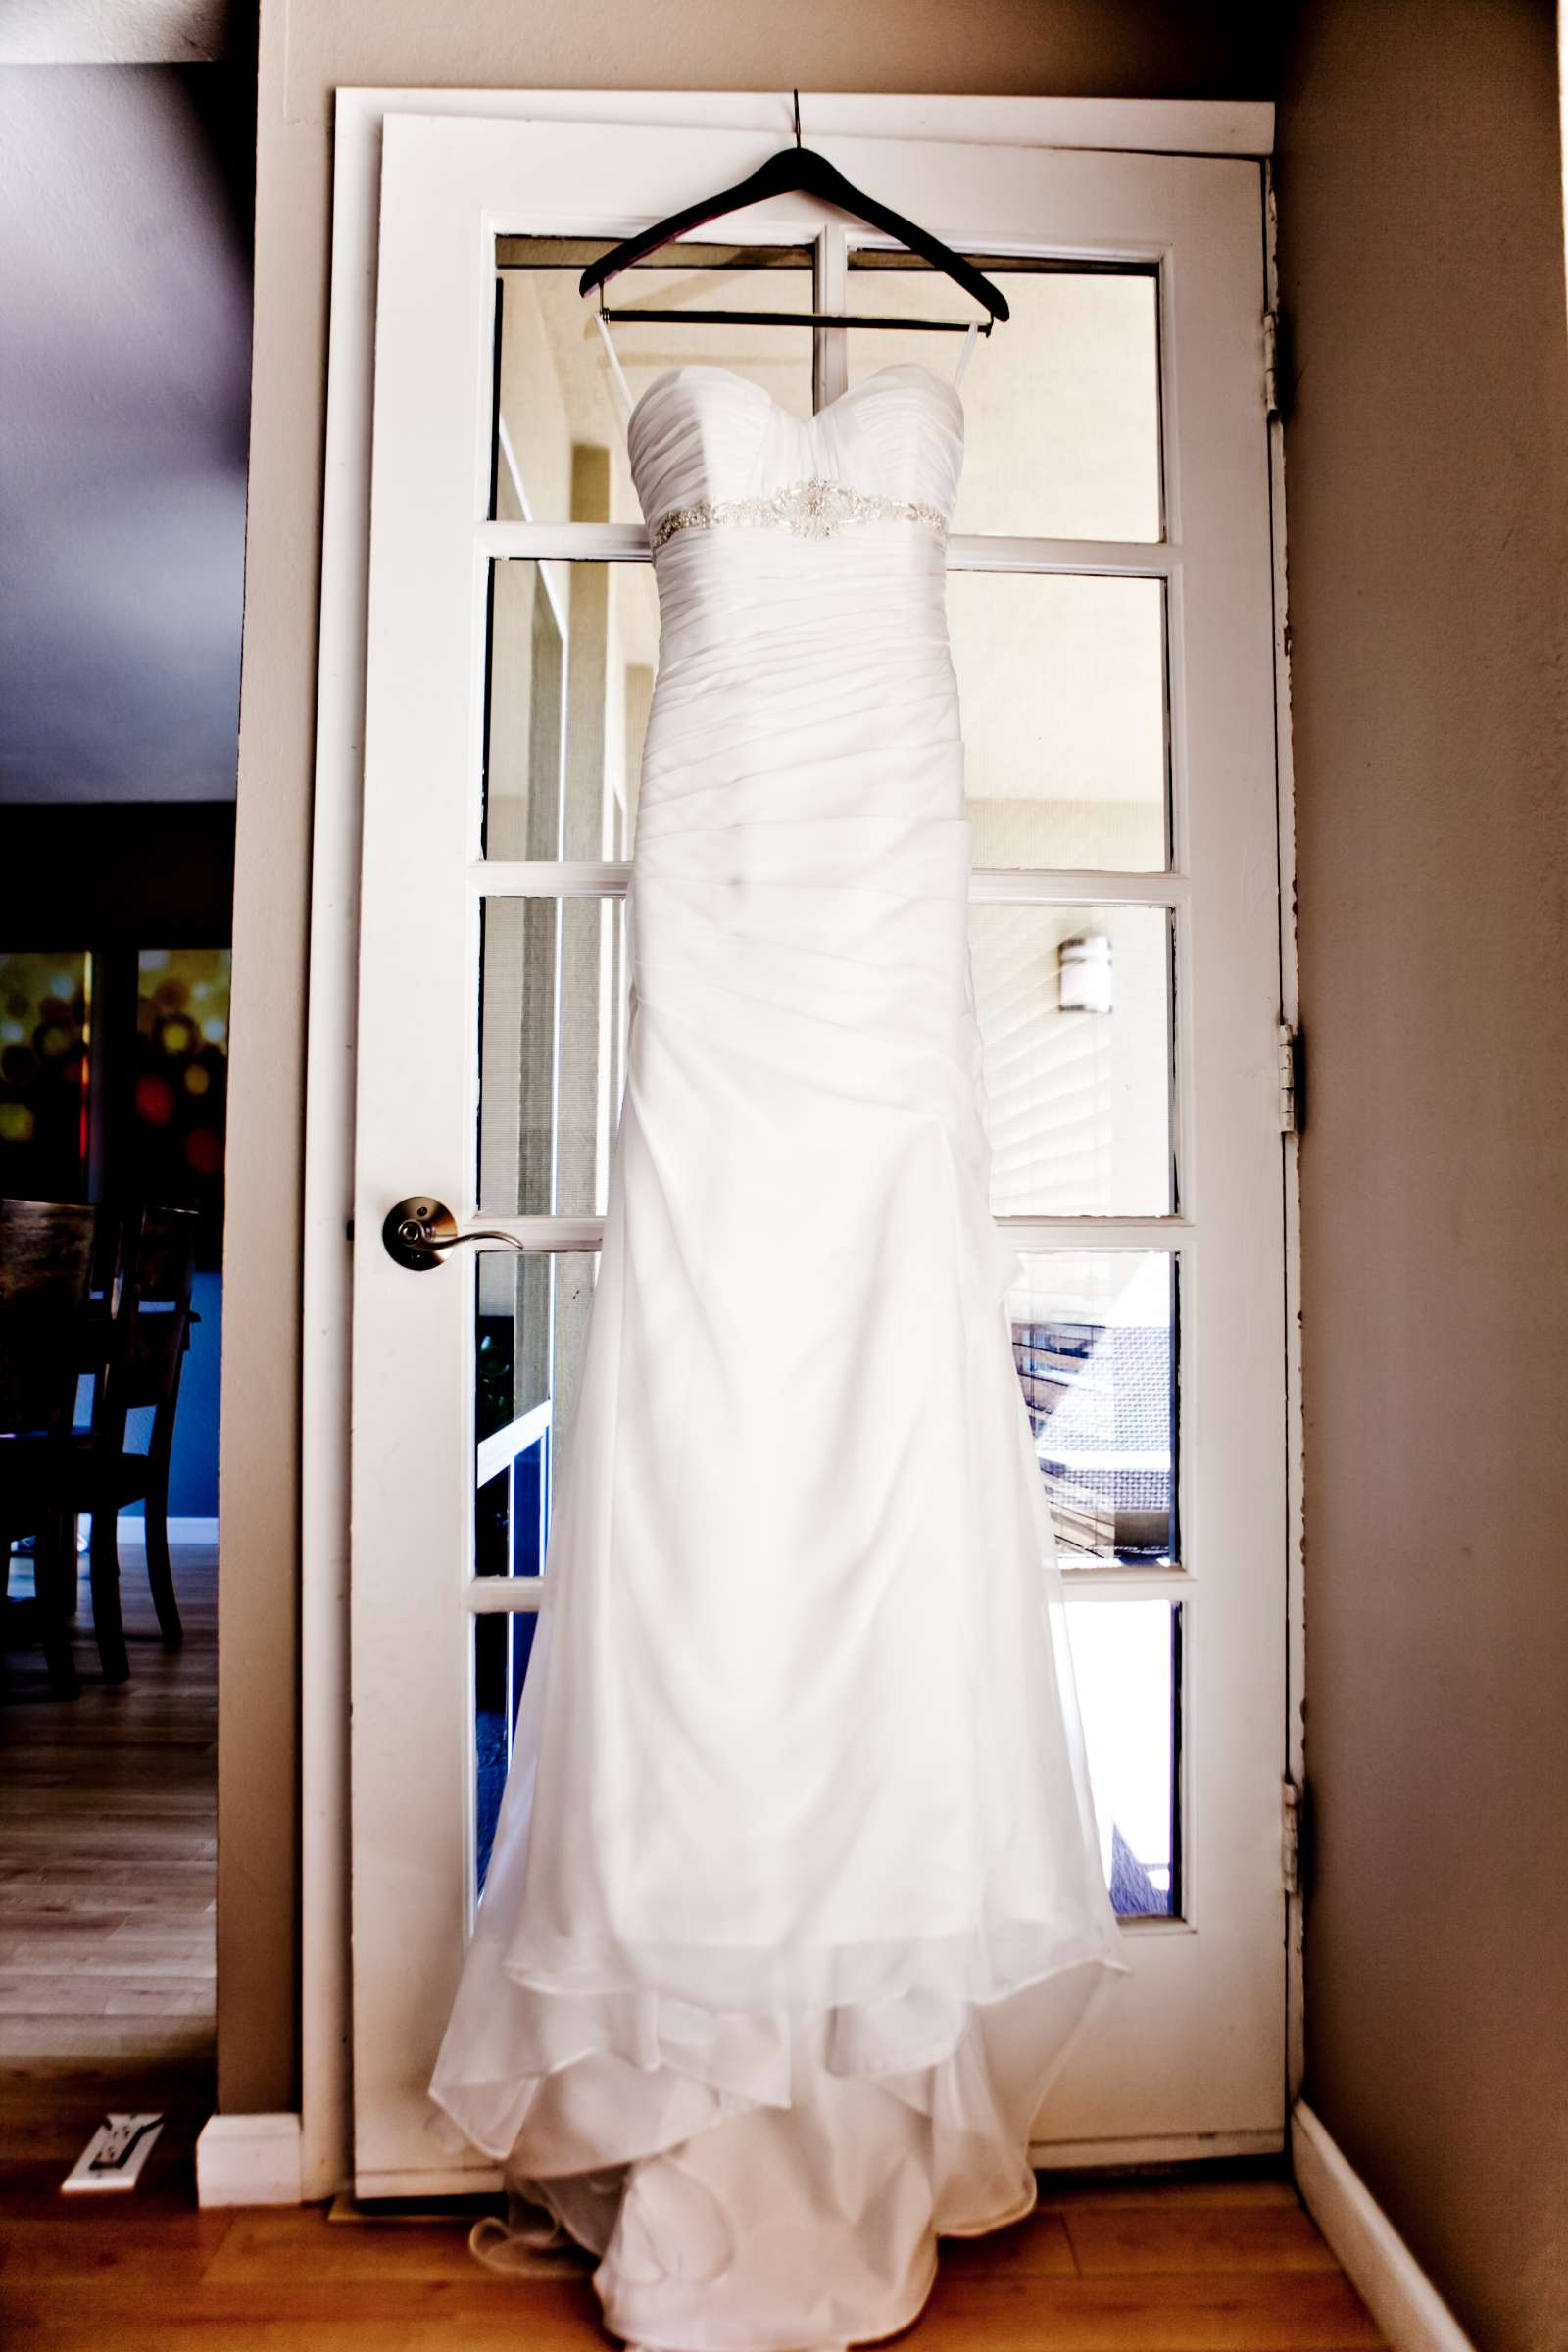 Wedding Dress at Ultimate Skybox Wedding, Chelsea and Frank Wedding Photo #18 by True Photography